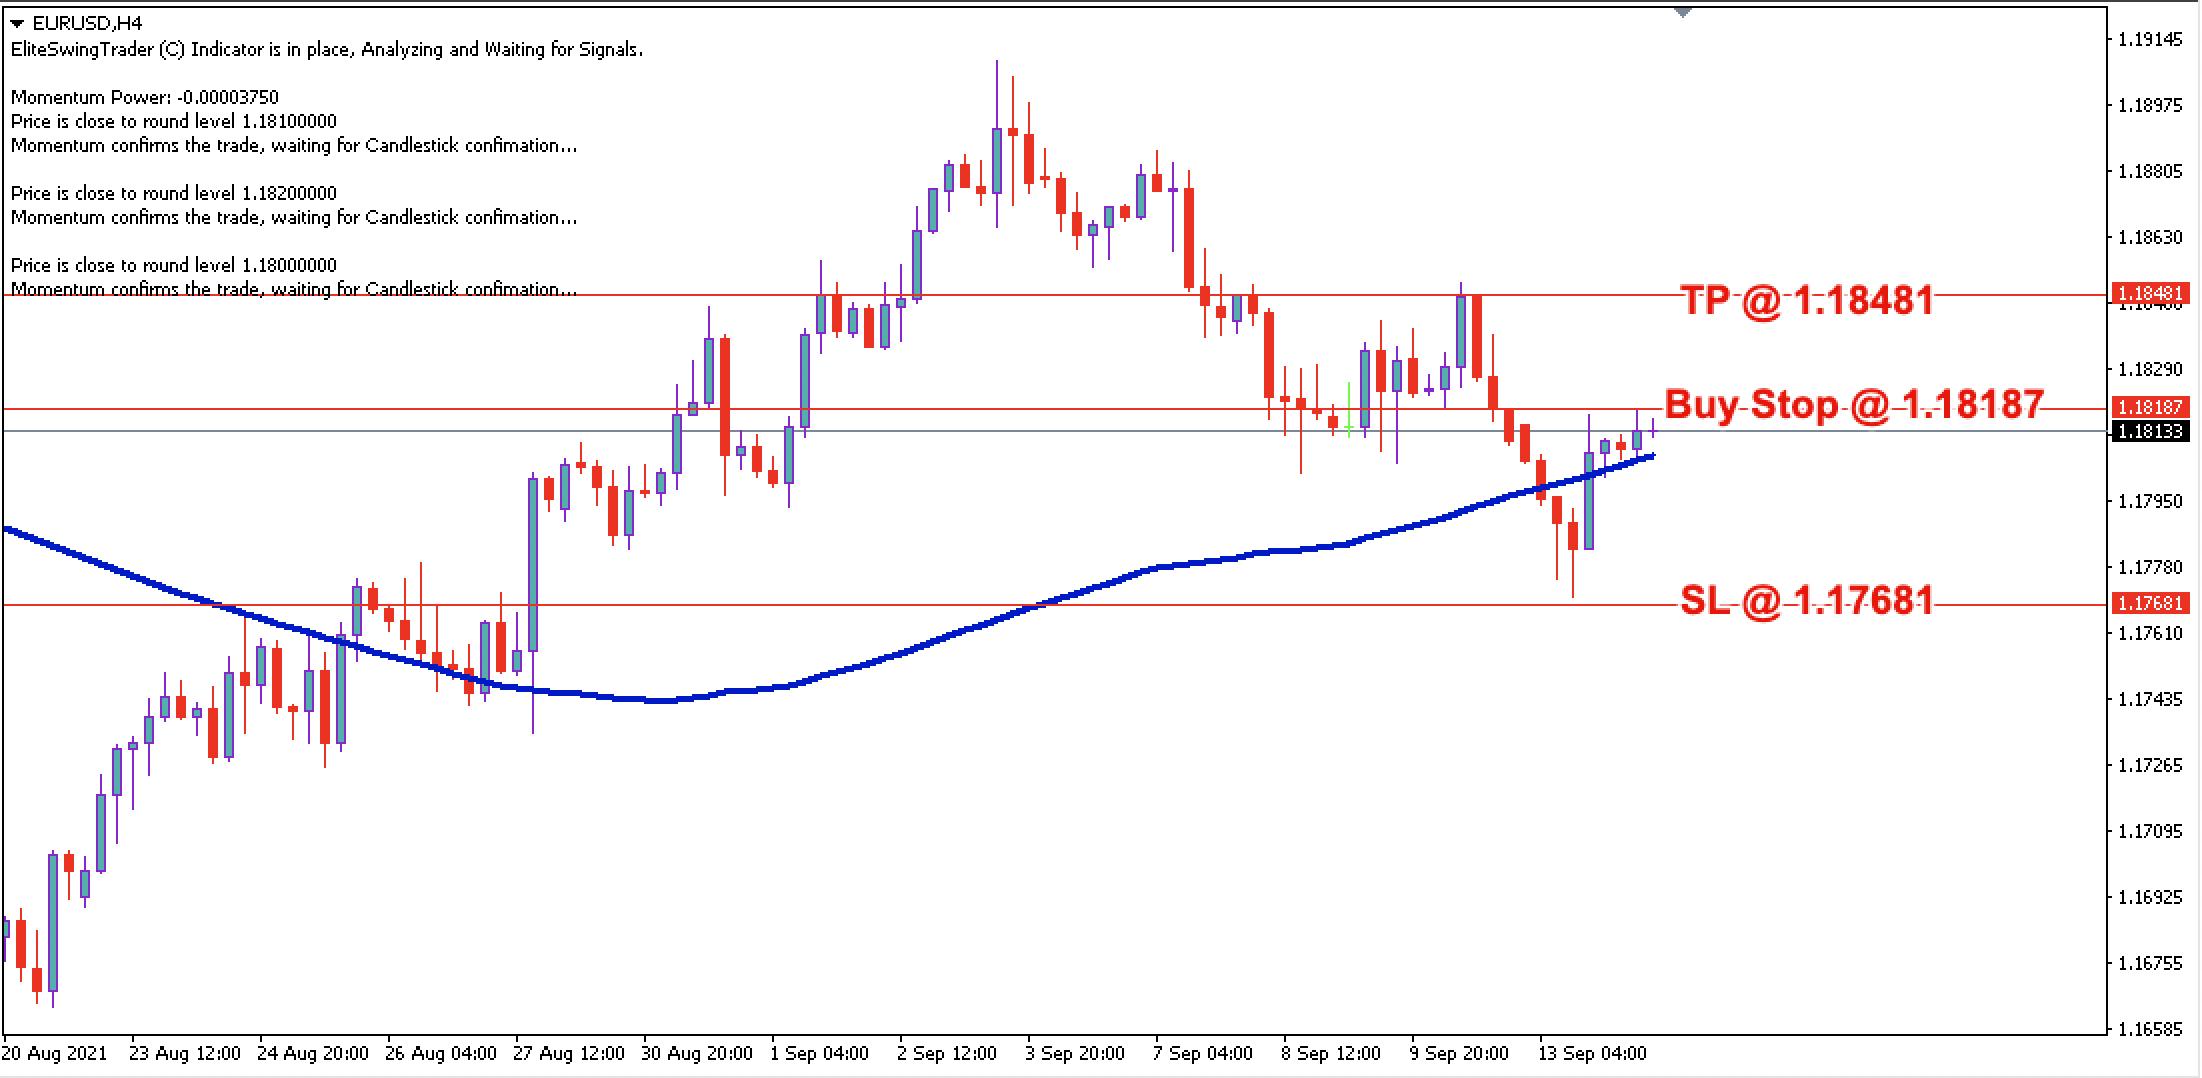 EUR/USD Daily Price Forecast – 14th Sept 2021